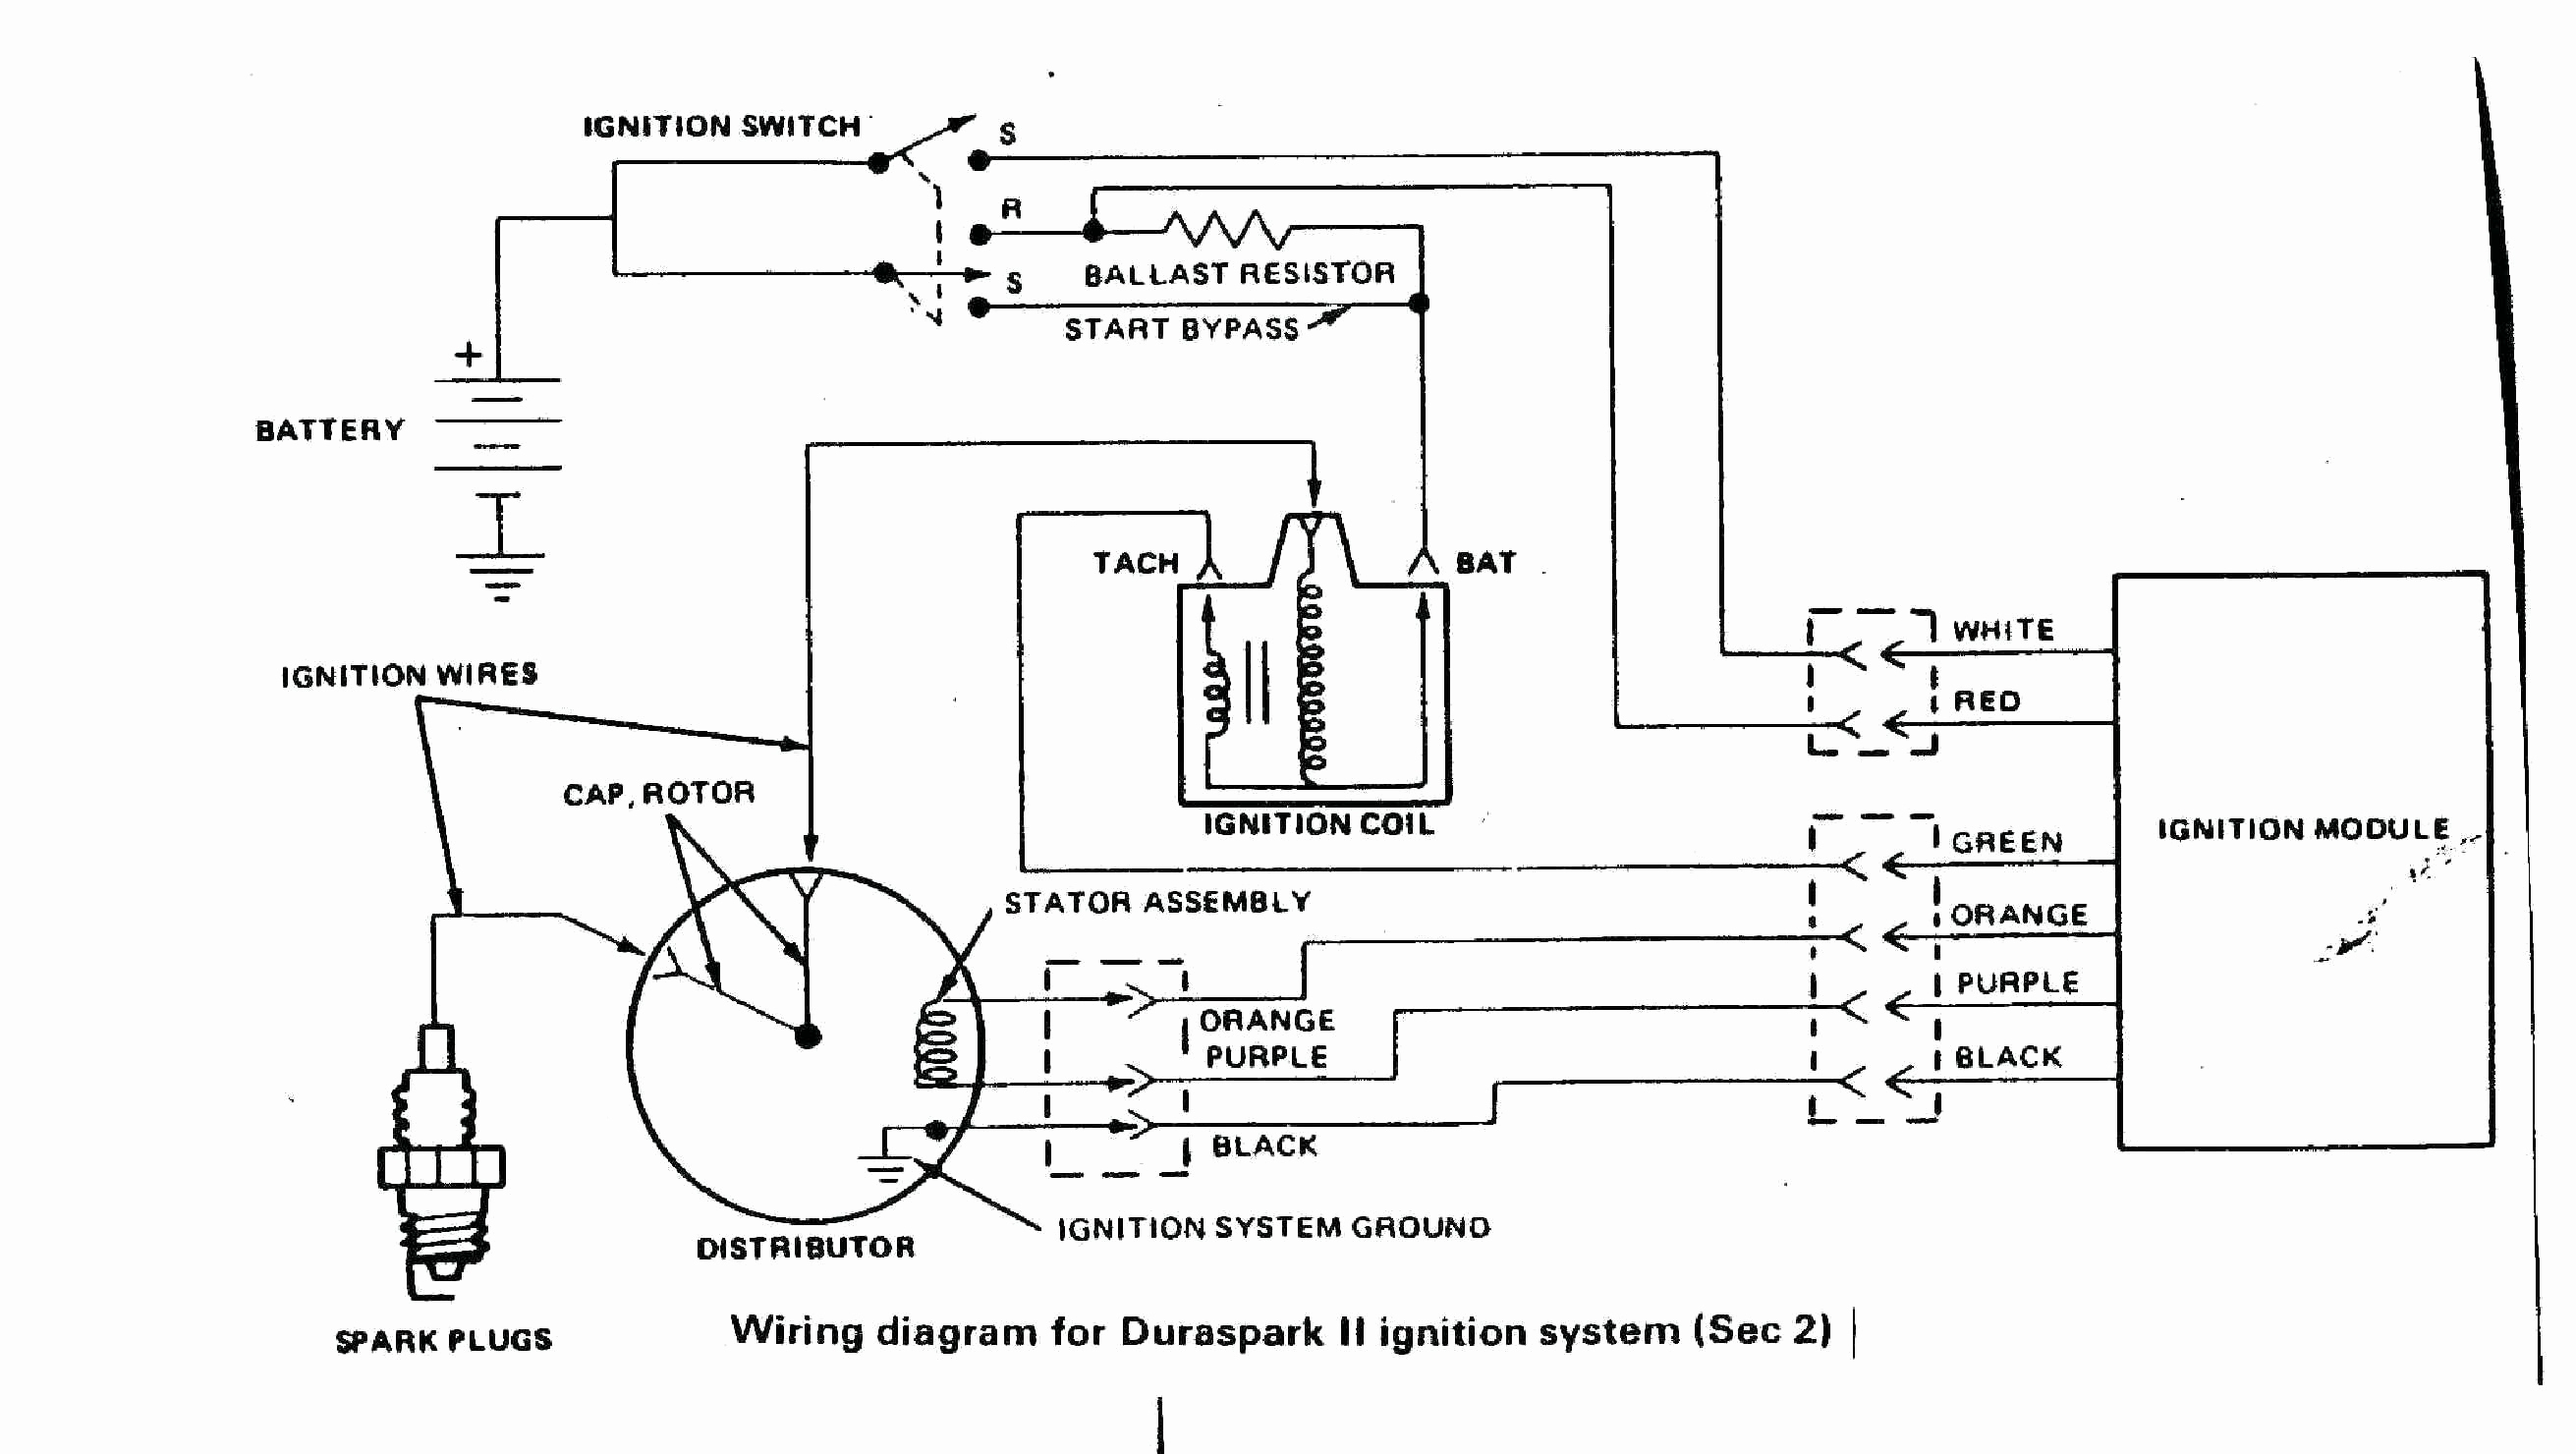 Harley Ignition Switch Wiring Diagram | Switch Wiring Diagram Free - Harley Ignition Switch Wiring Diagram